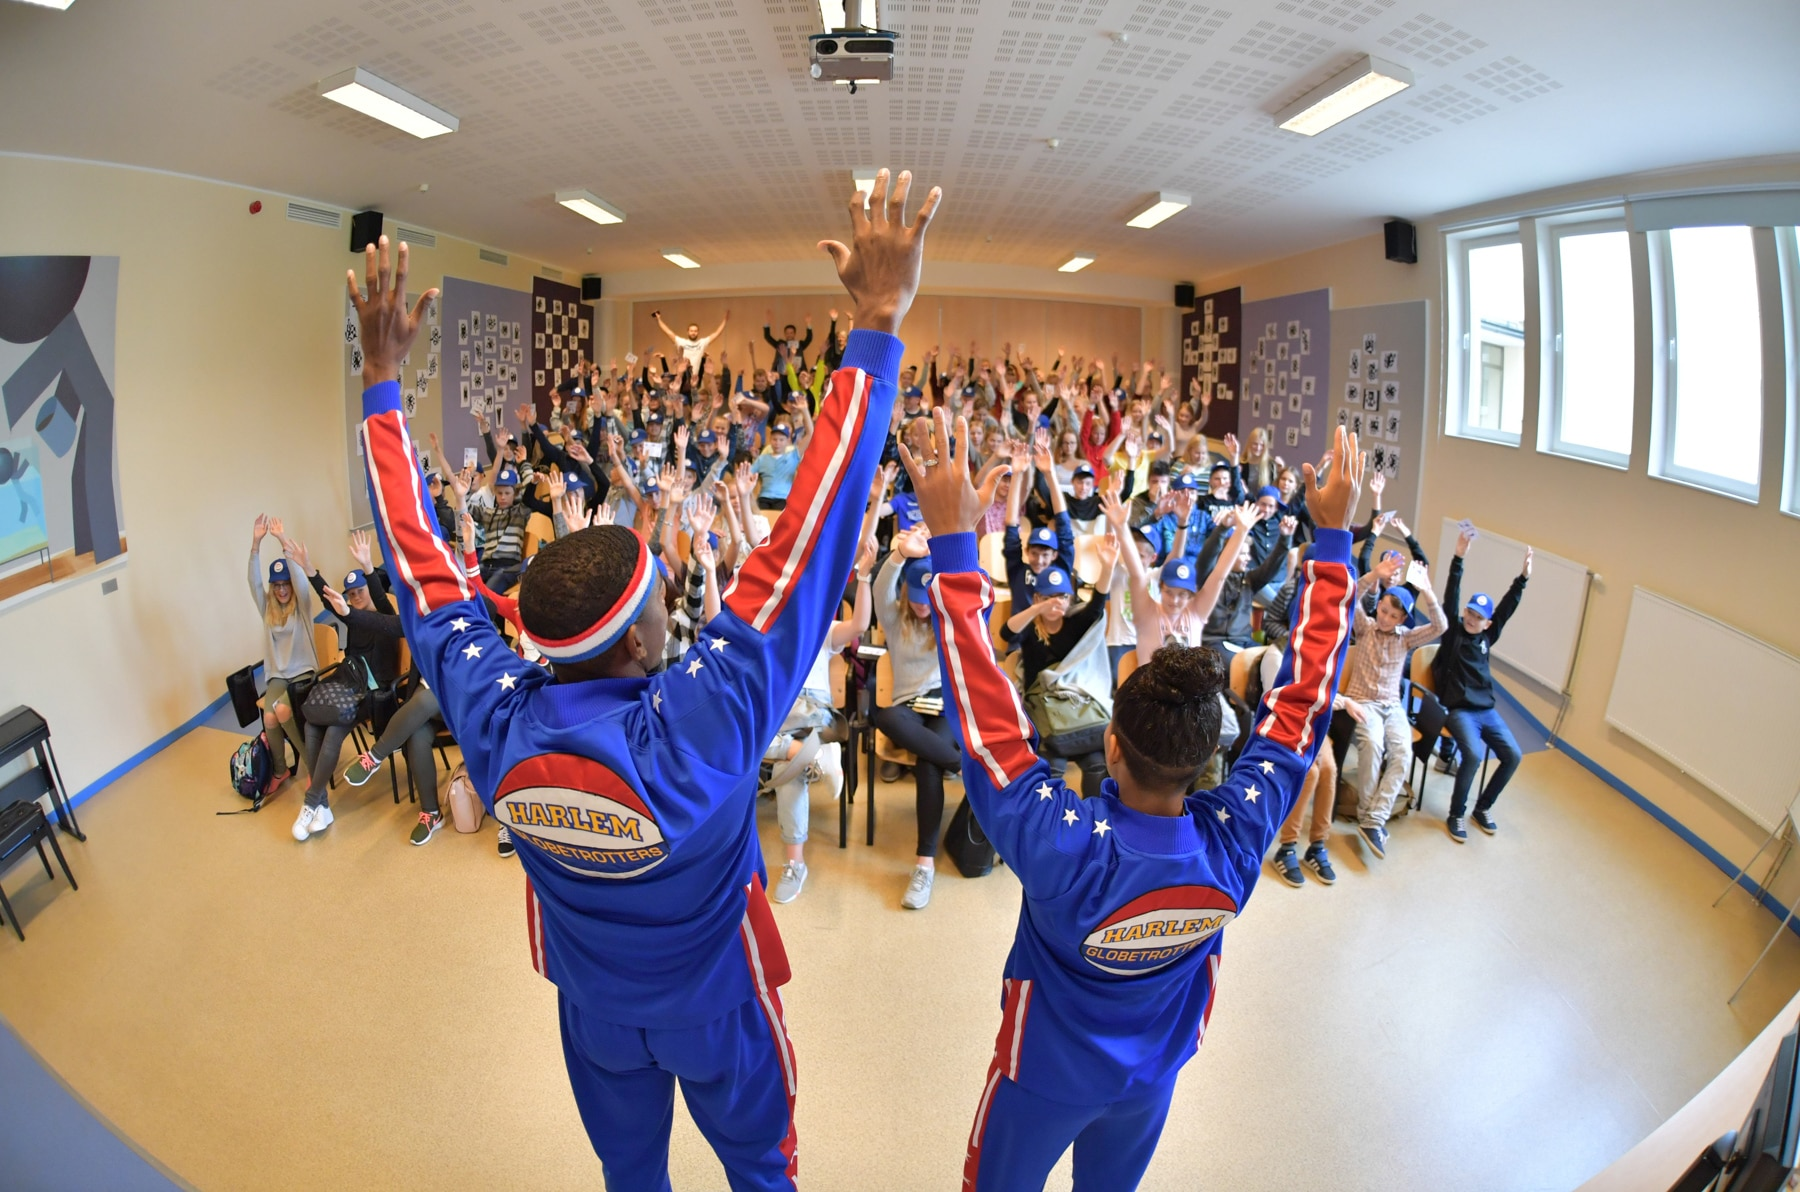 Two adults leading a roomful of students as they raise their arms in victory (© Brett Meister/Harlem Globetrotters)